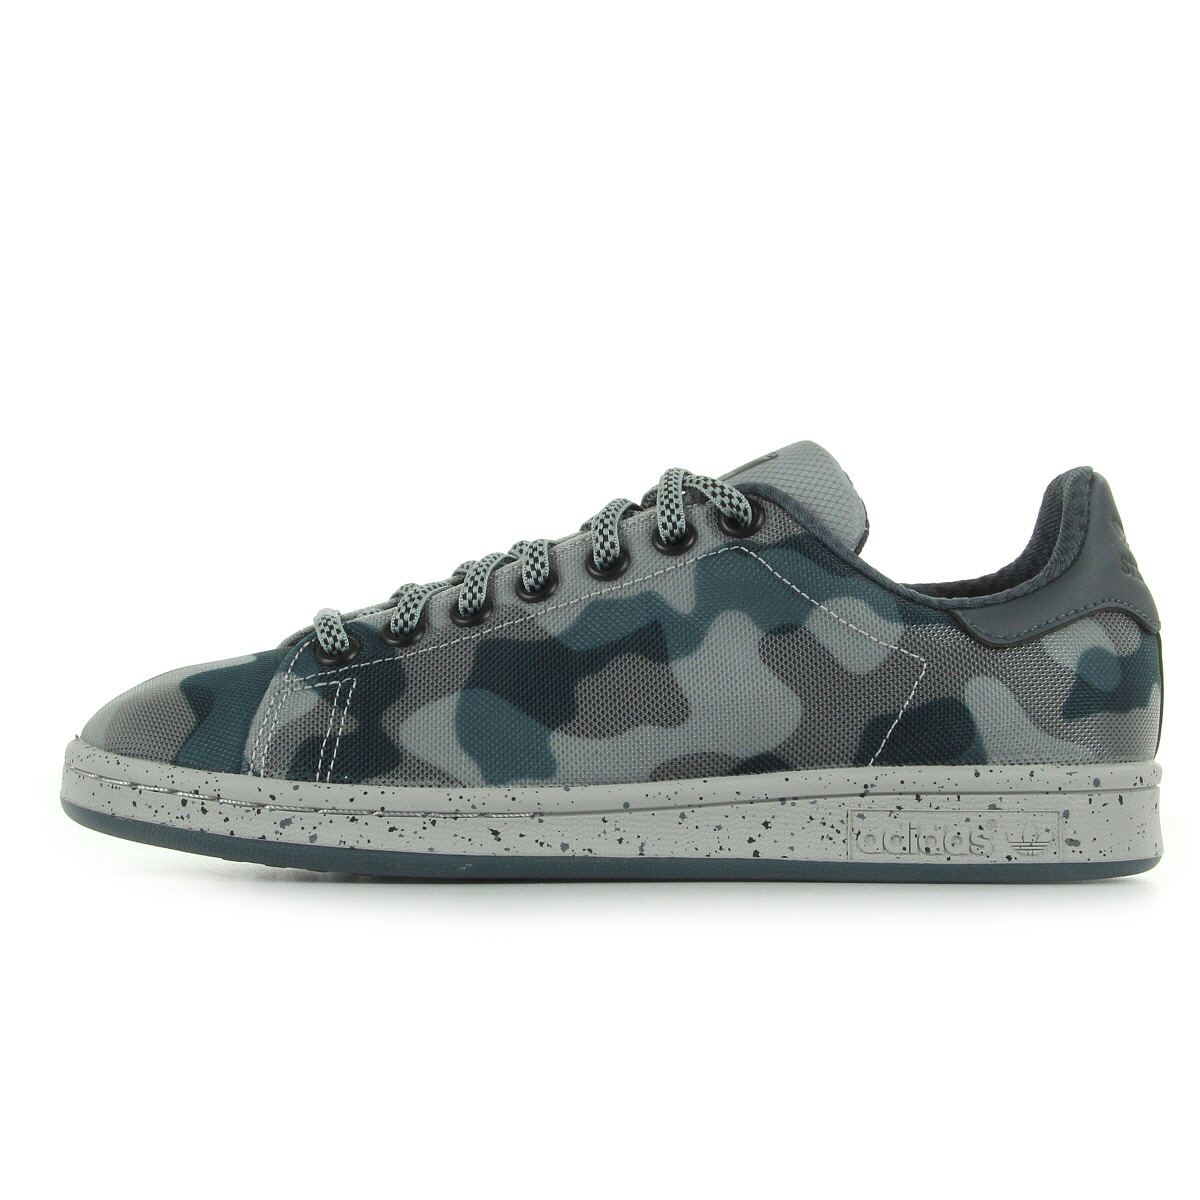 Chaussures Baskets Adidas Homme Stan Smith Taille Gris Grise Textile